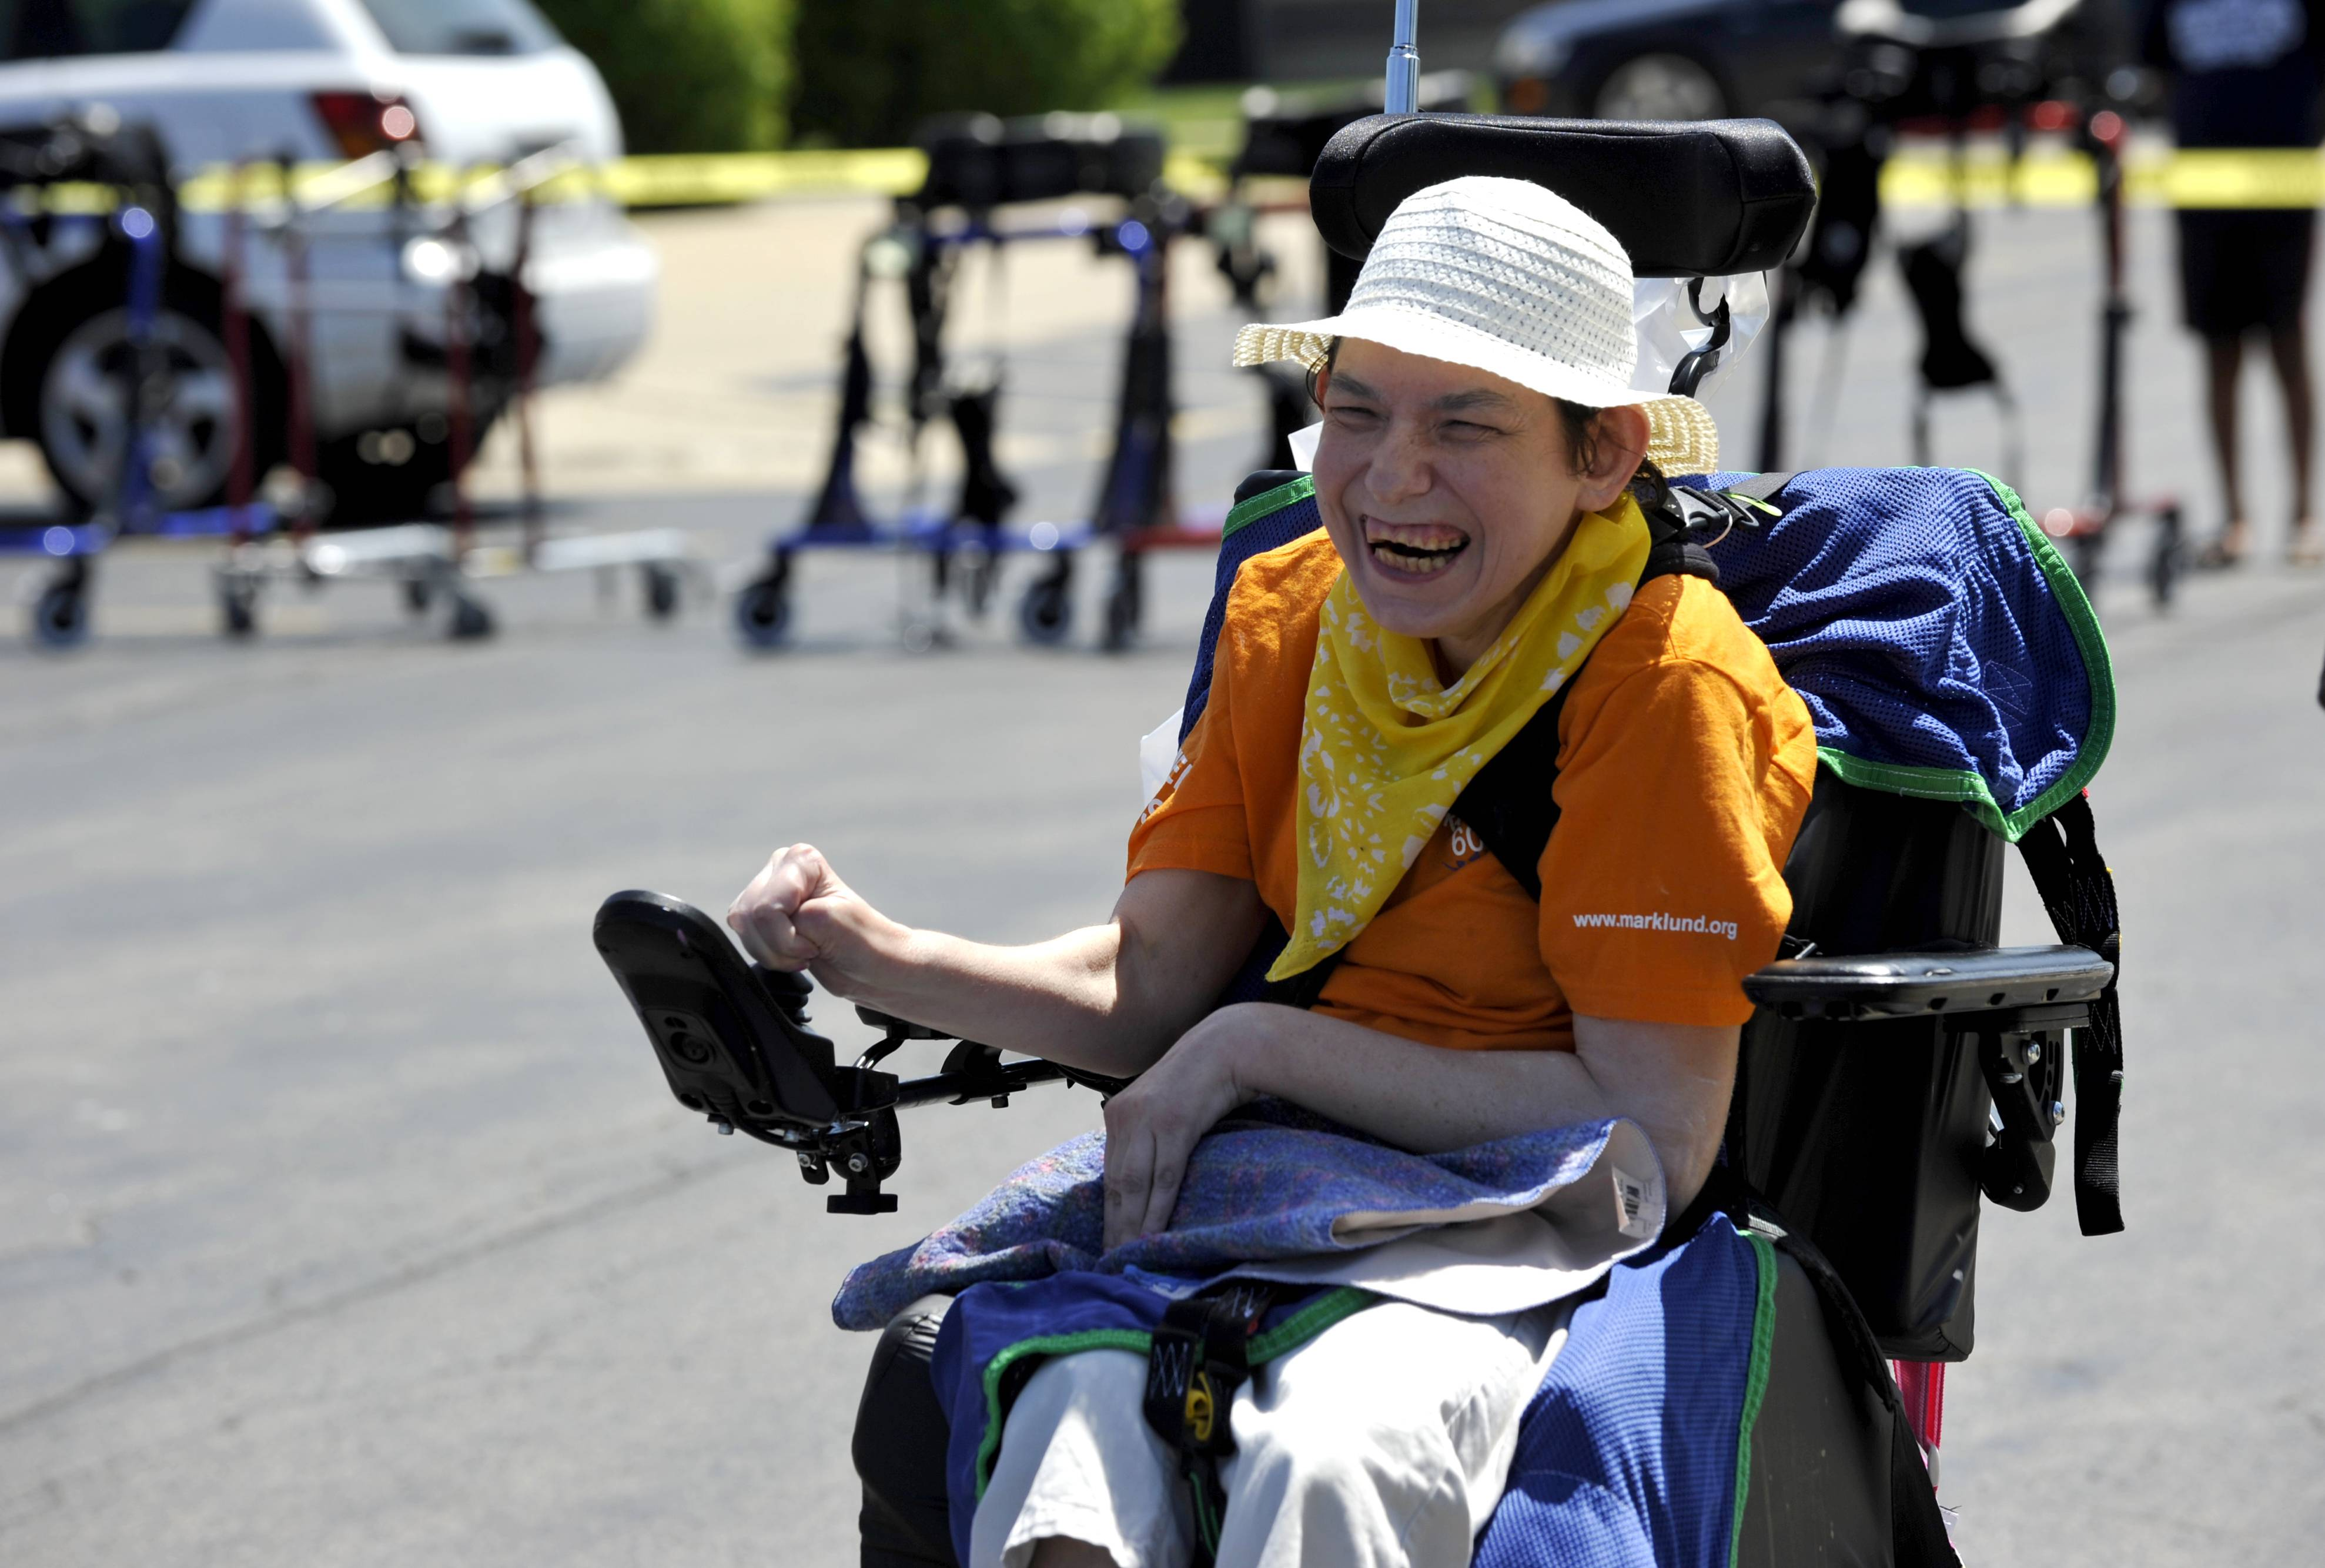 Shelia Sullivan laughs with excitement as she finishes first in the wheelchair race during Marklund's annual Summer Games in Geneva on Saturday.